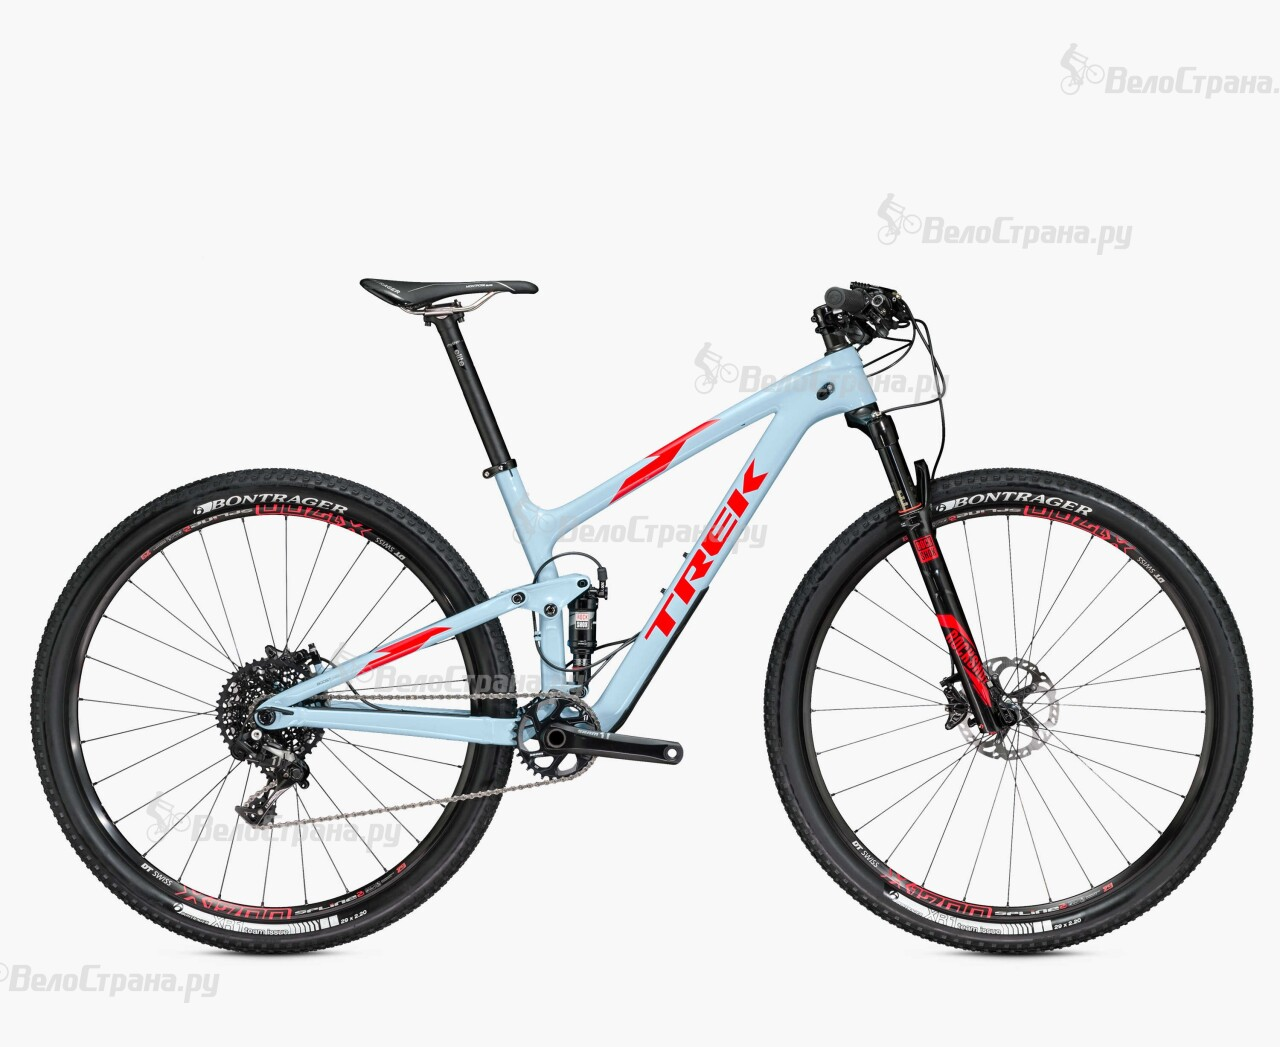 Велосипед Trek Top Fuel 9.8 SL 29 (2016) велосипед trek fuel ex 9 29 2017